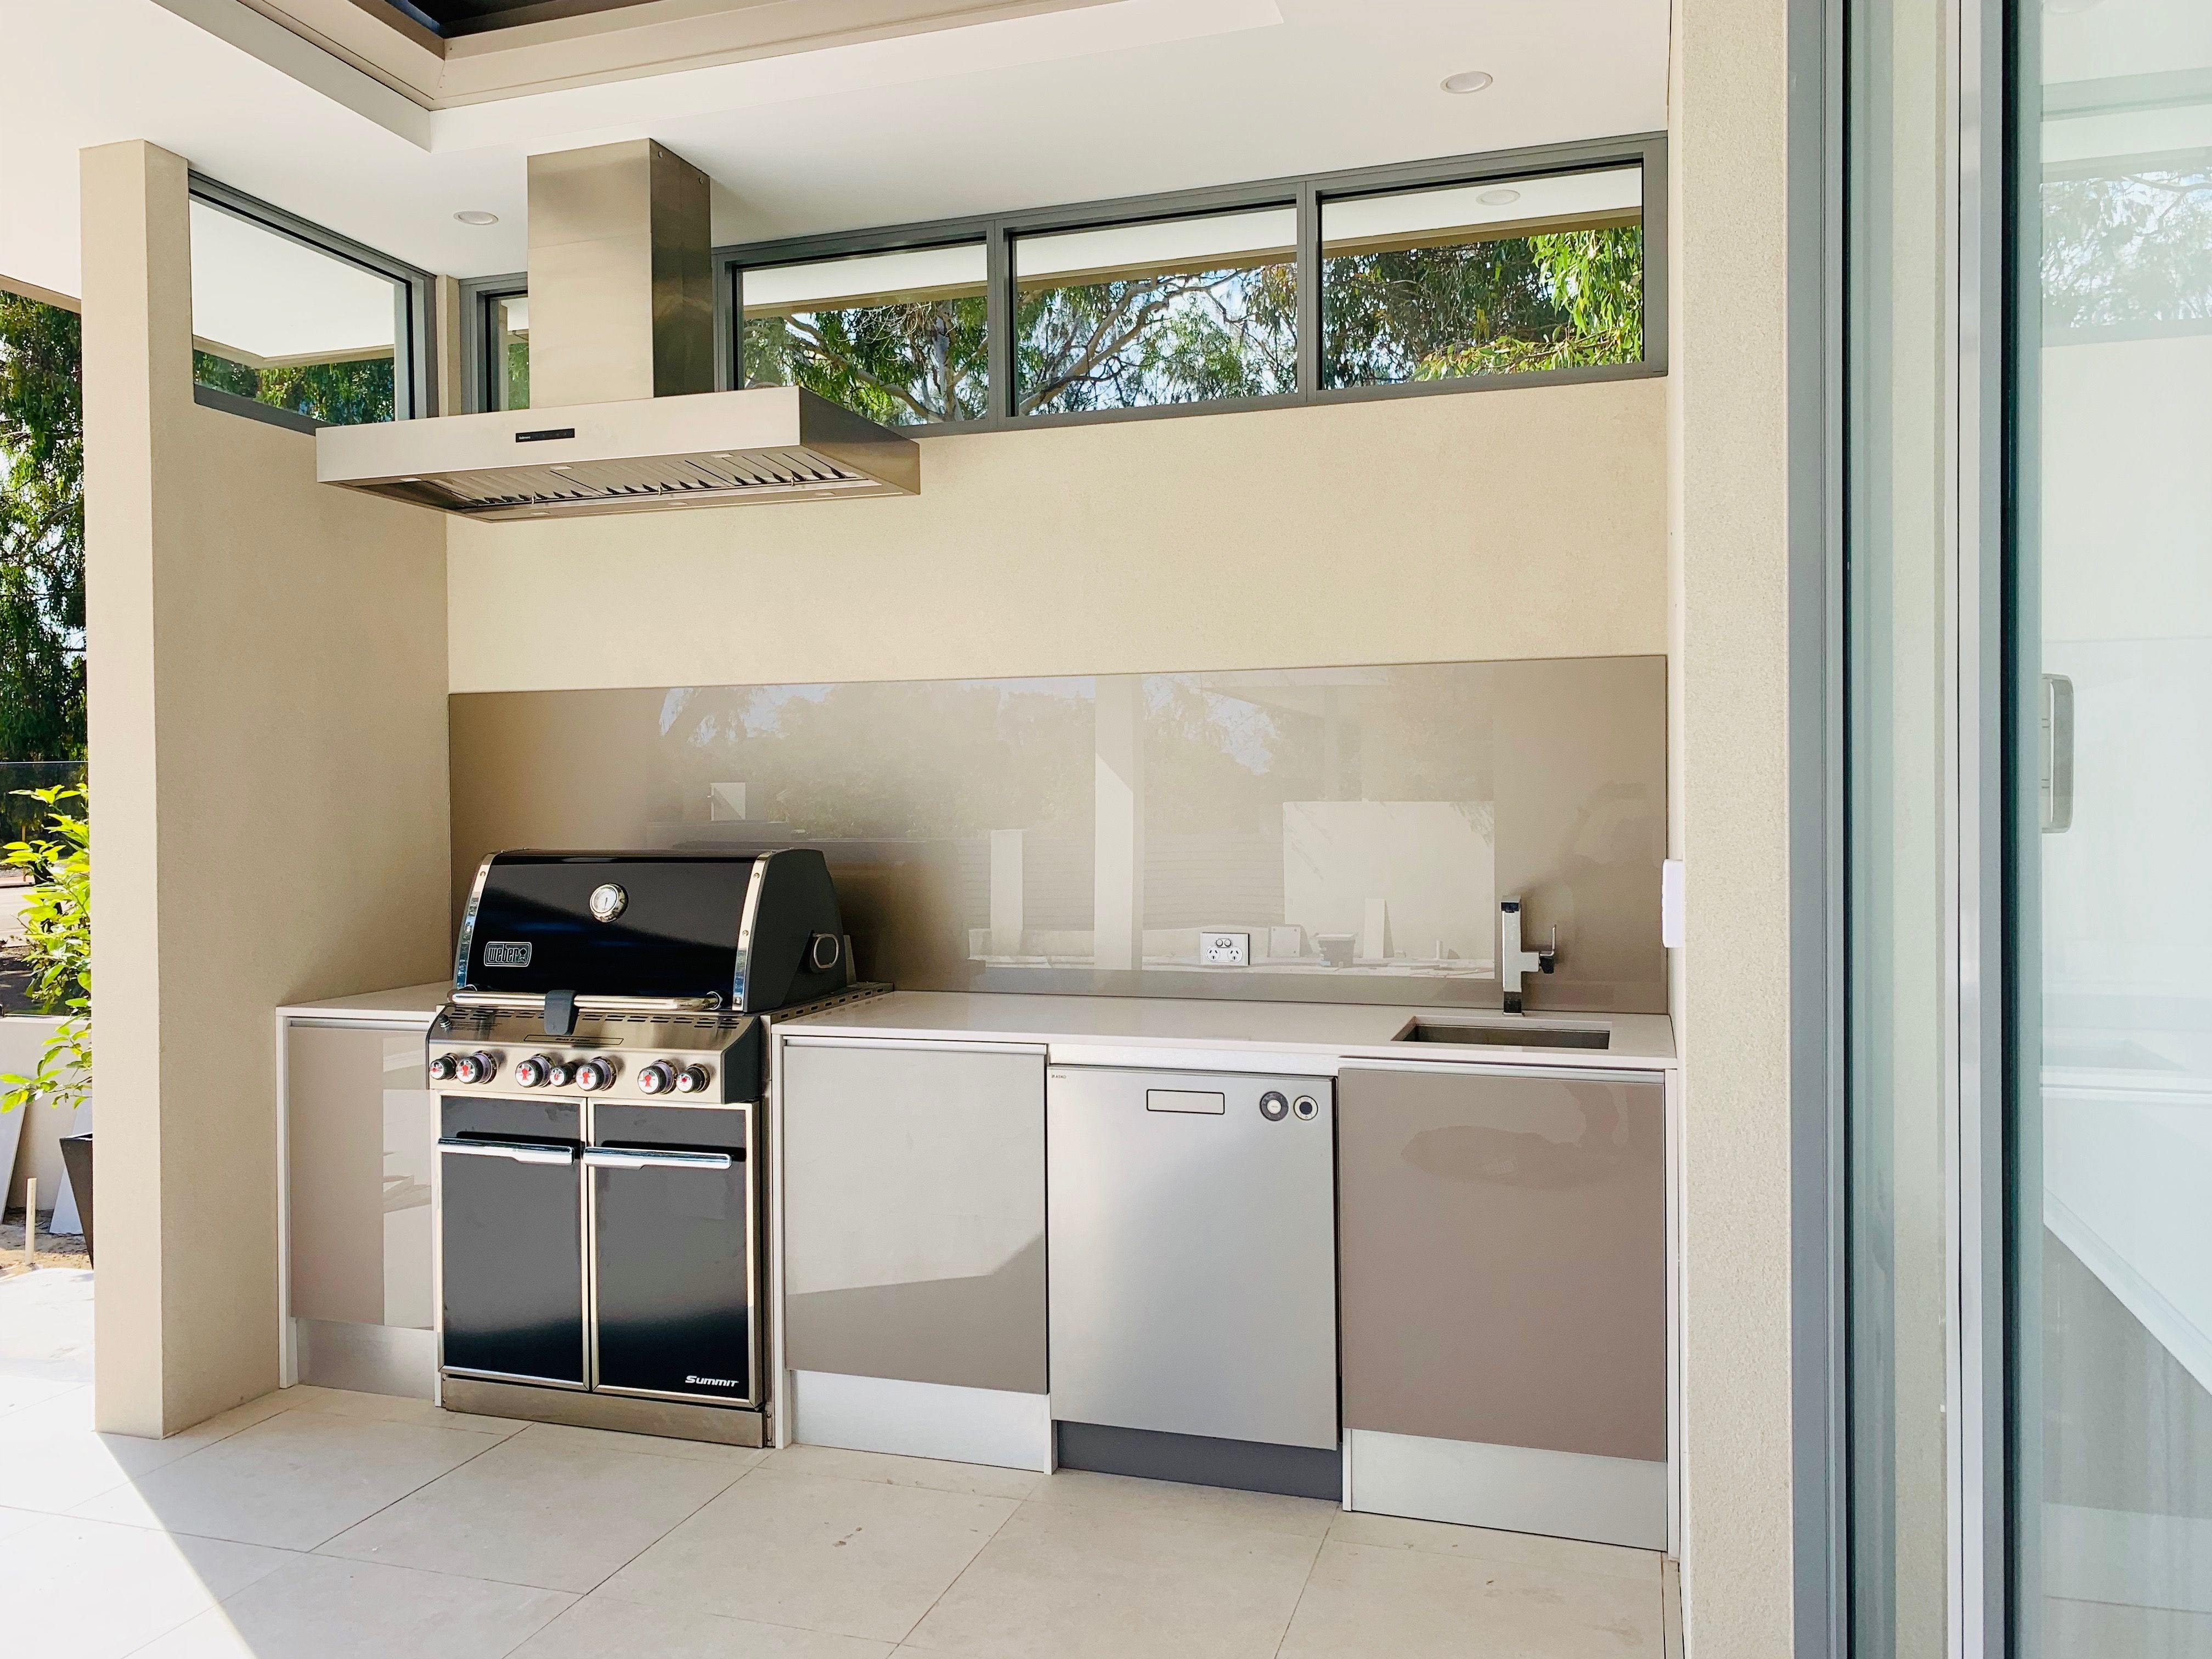 We are Perth's Outdoor Kitchen Specialists with showrooms